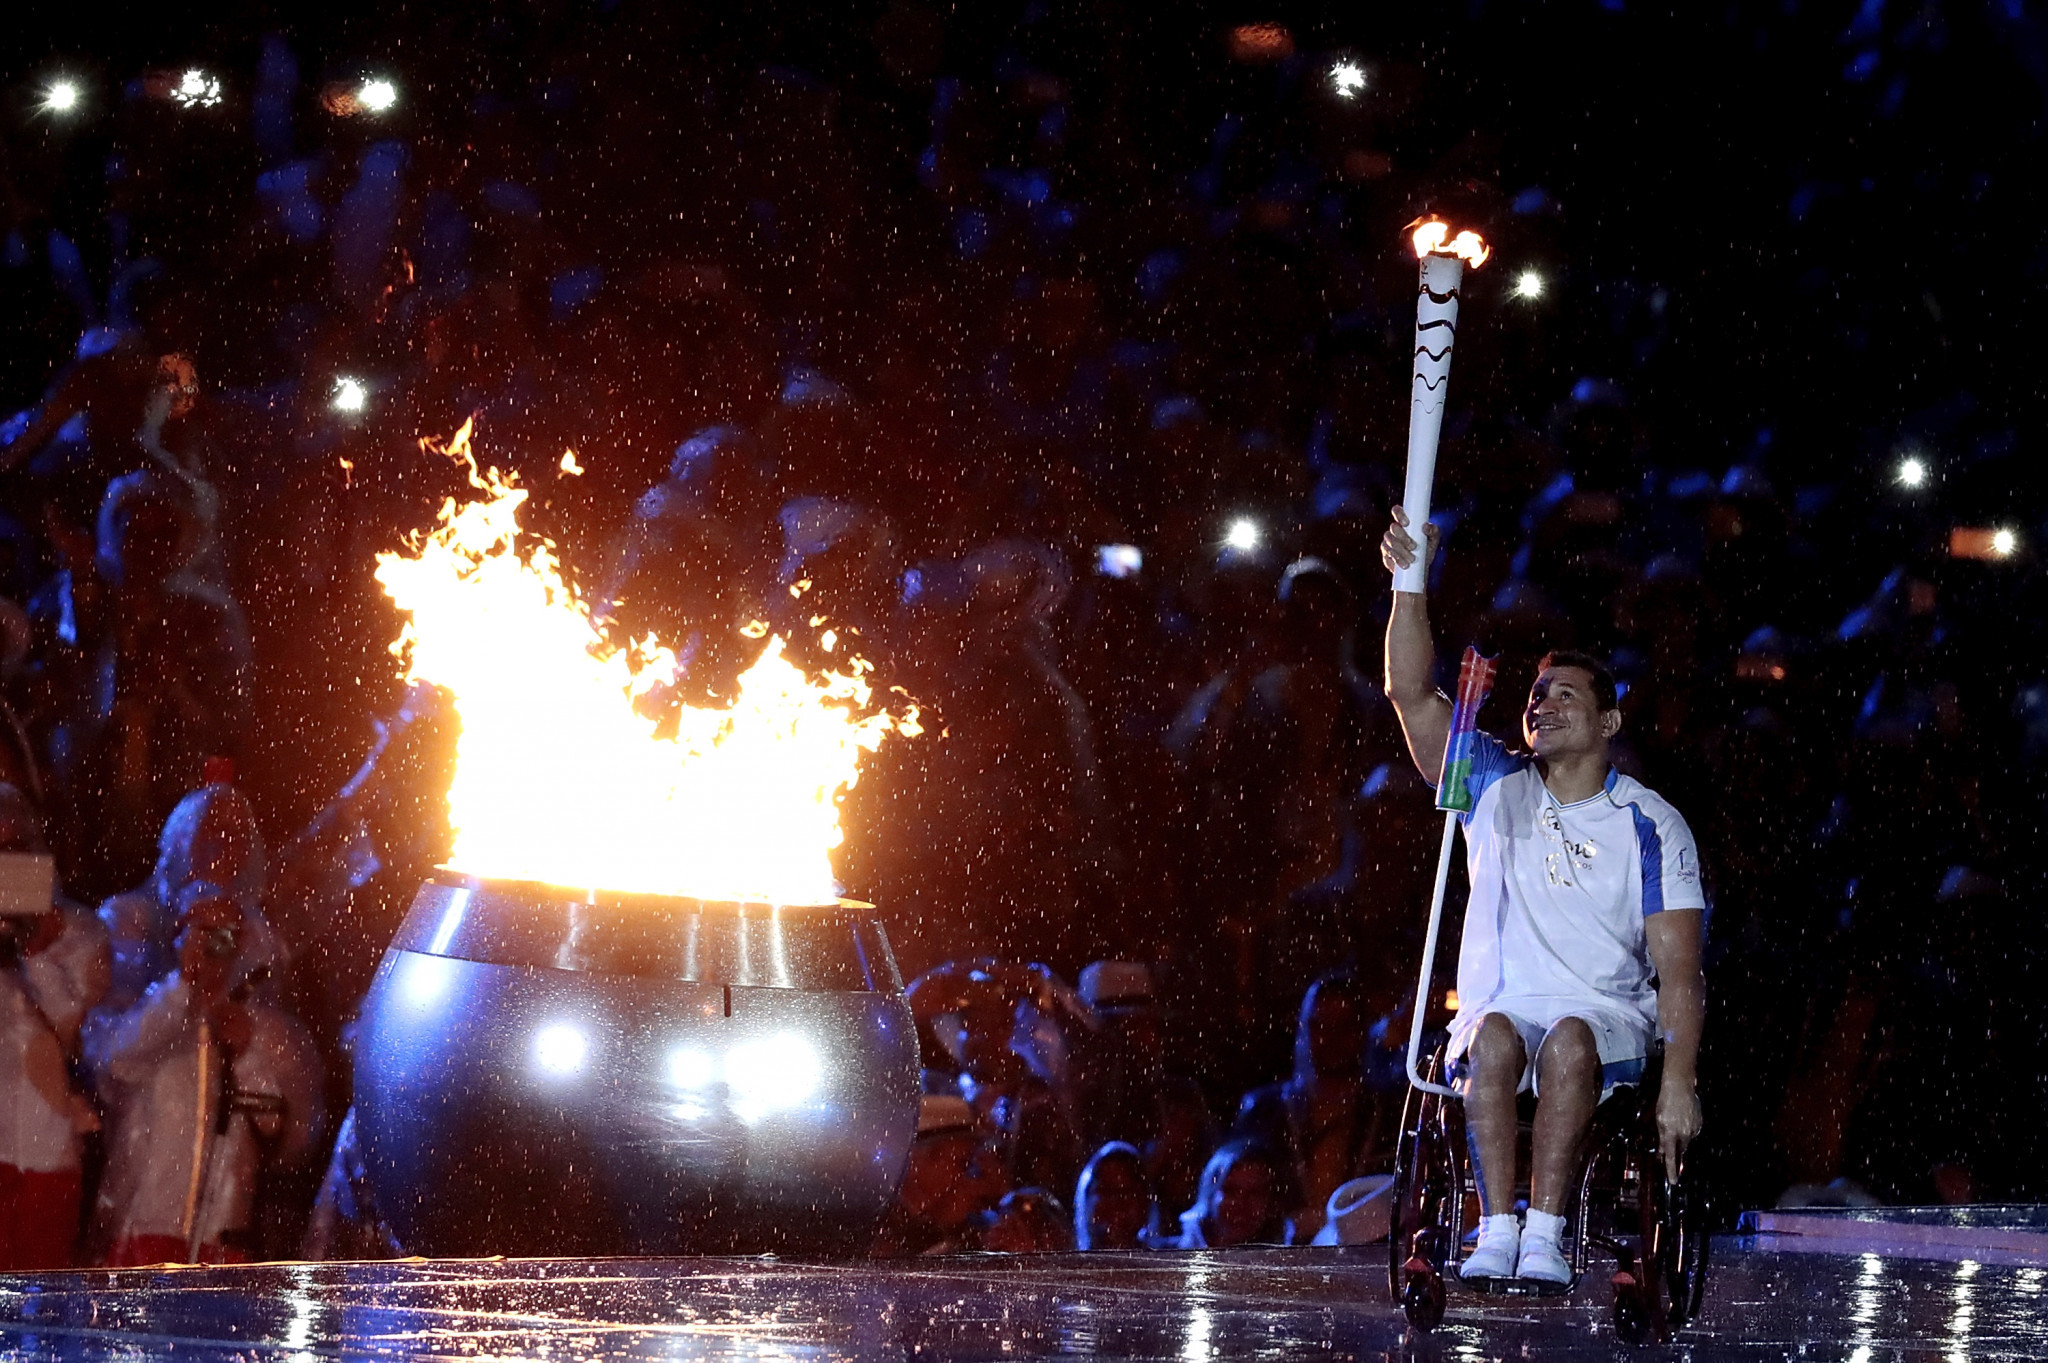 Swimmer, Clodoaldo Silva, of Brazil lights the Paralympic flame during the Opening Ceremony of the Rio 2016 Paralympic Games ©Getty Images